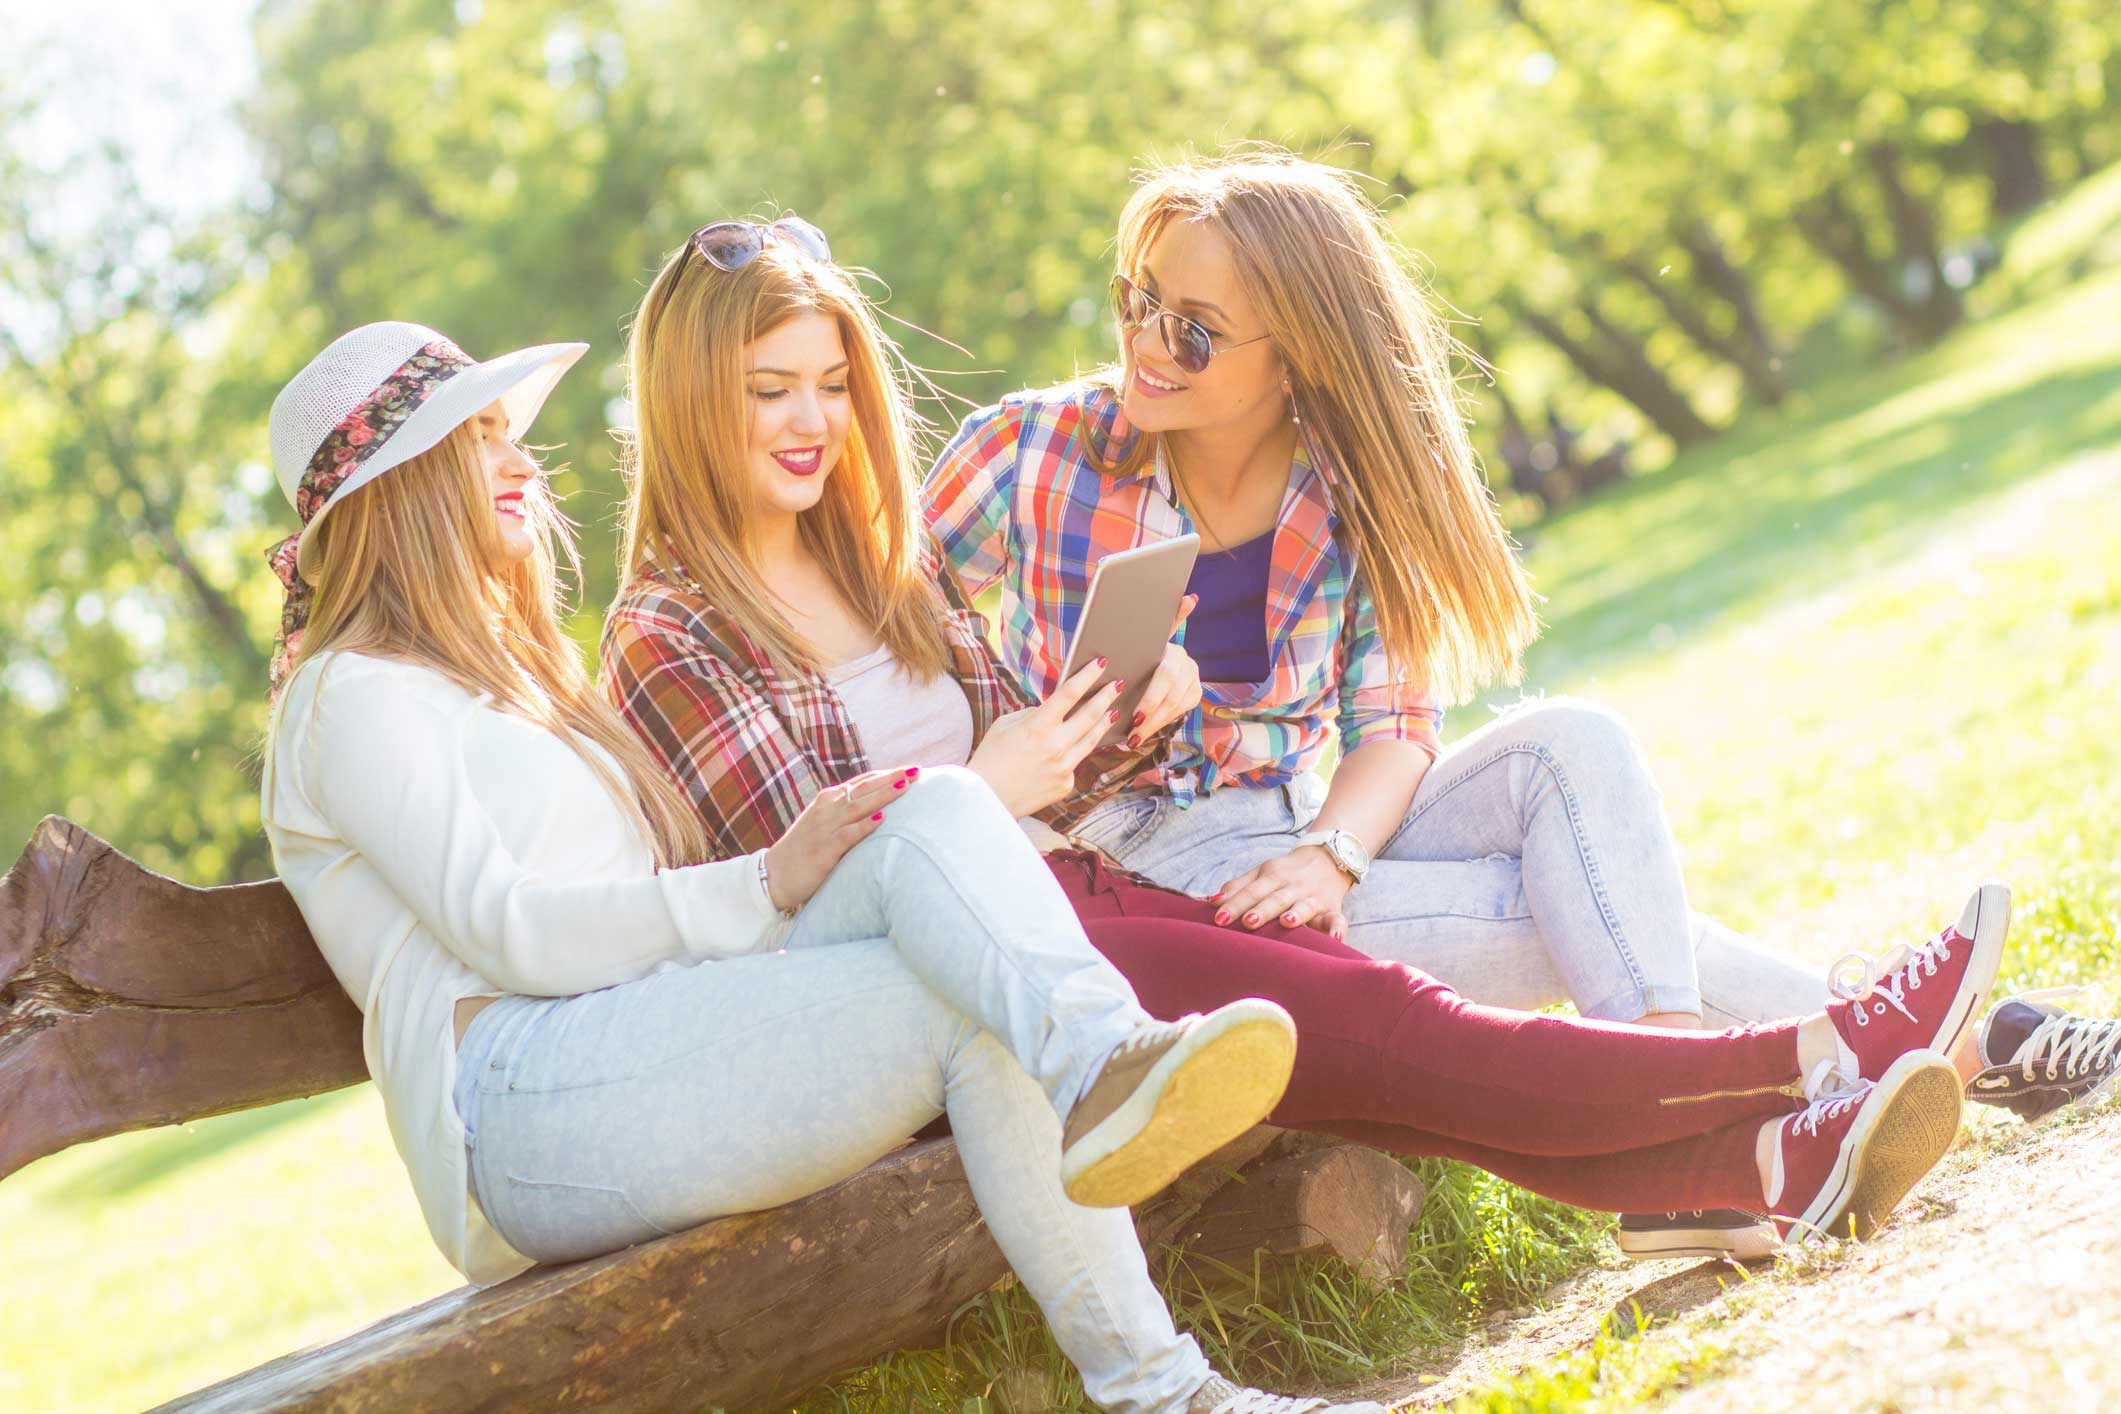 Things I Learned from My Sister | Reader's Digest